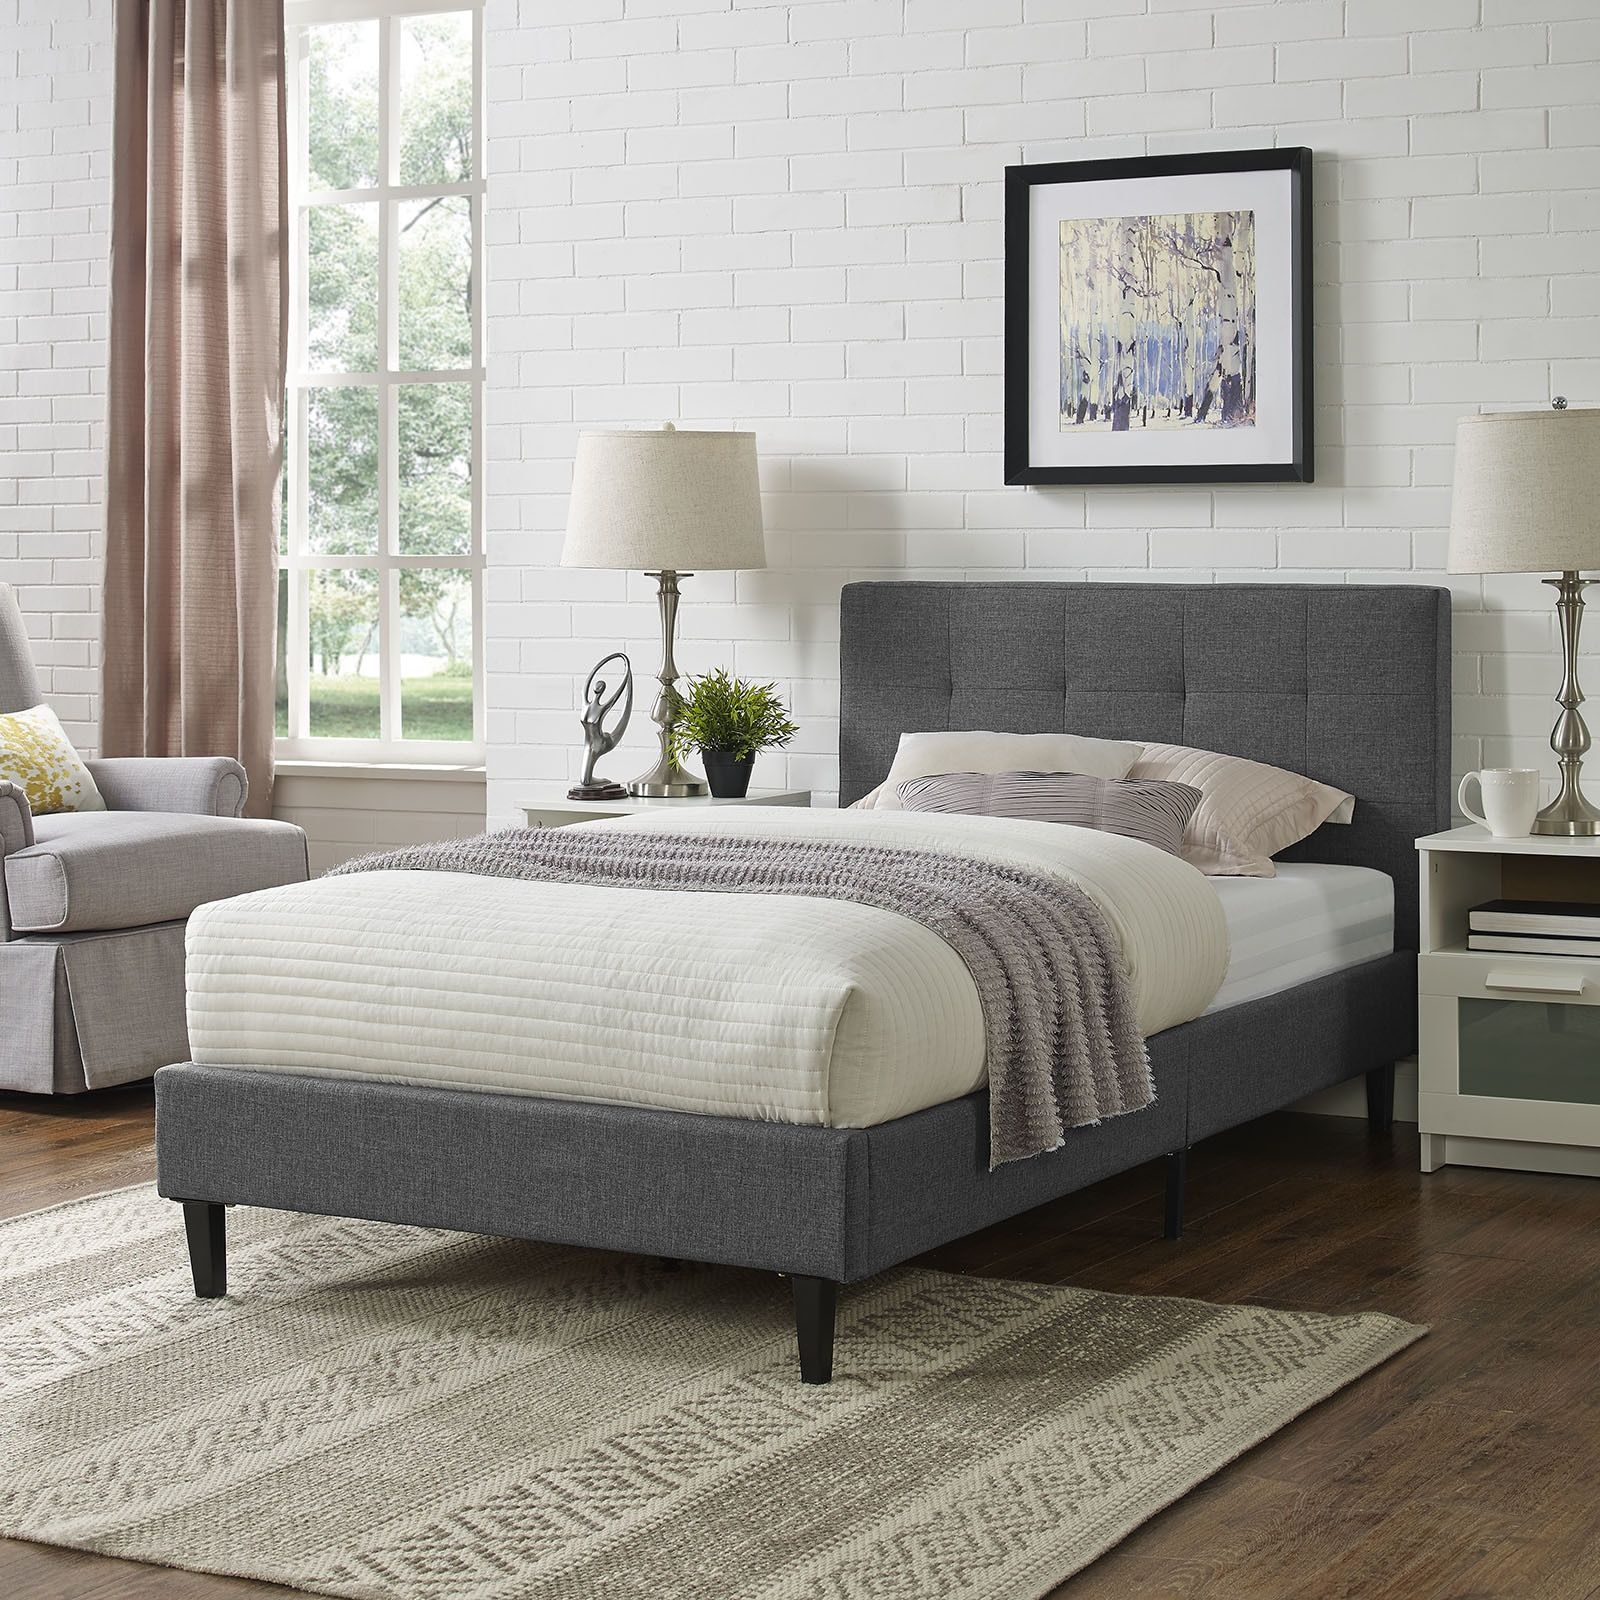 Pin By Carina Teed On Graces Room In 2019: Linnea Bed Frame (Azure), Kids Unisex, Blue, Modway